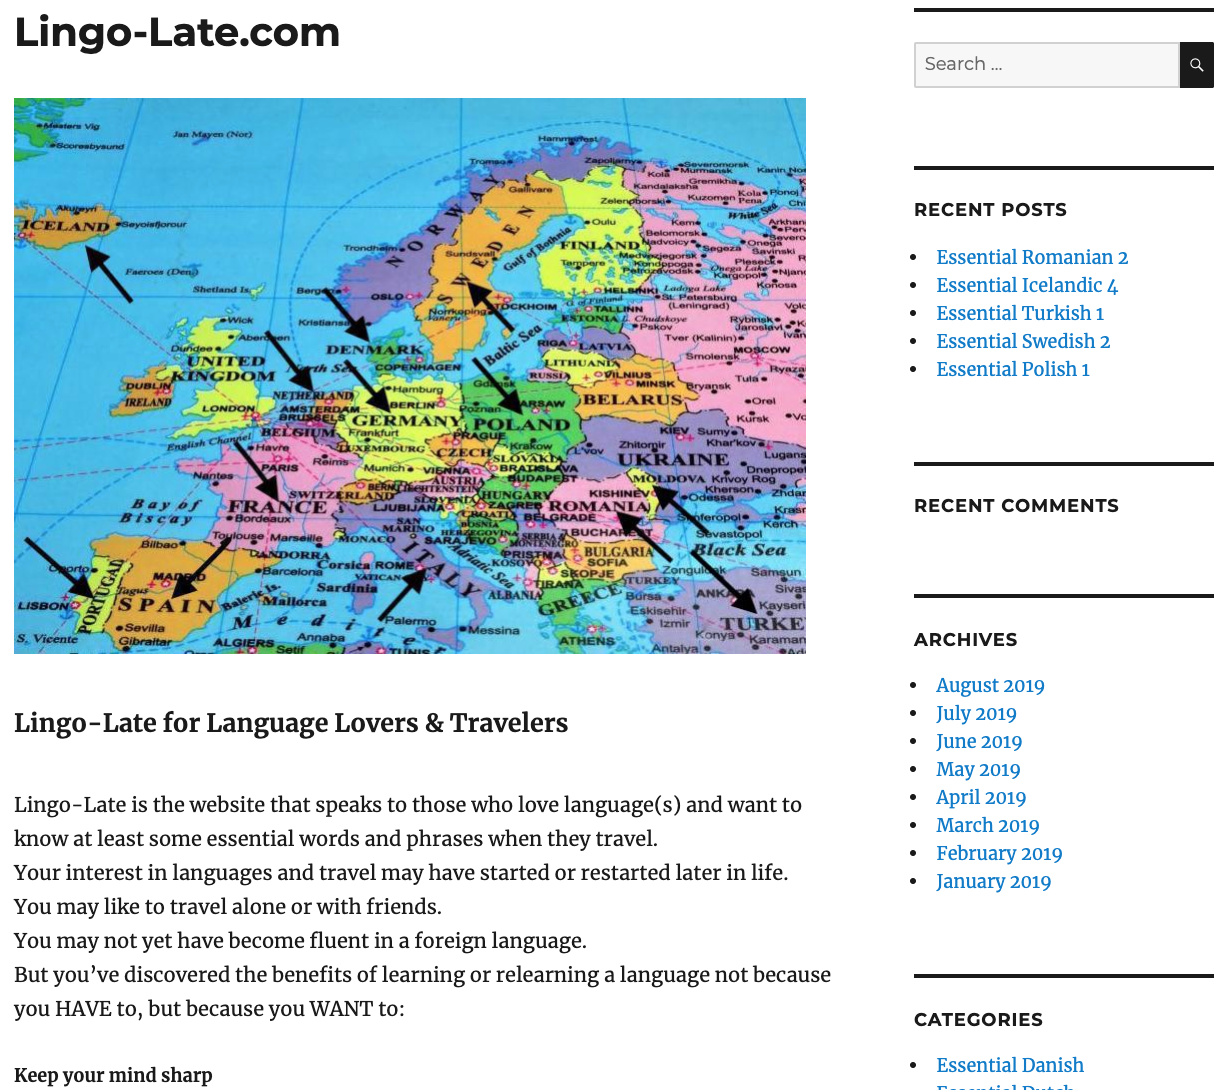 Home page of Lingo-late.com